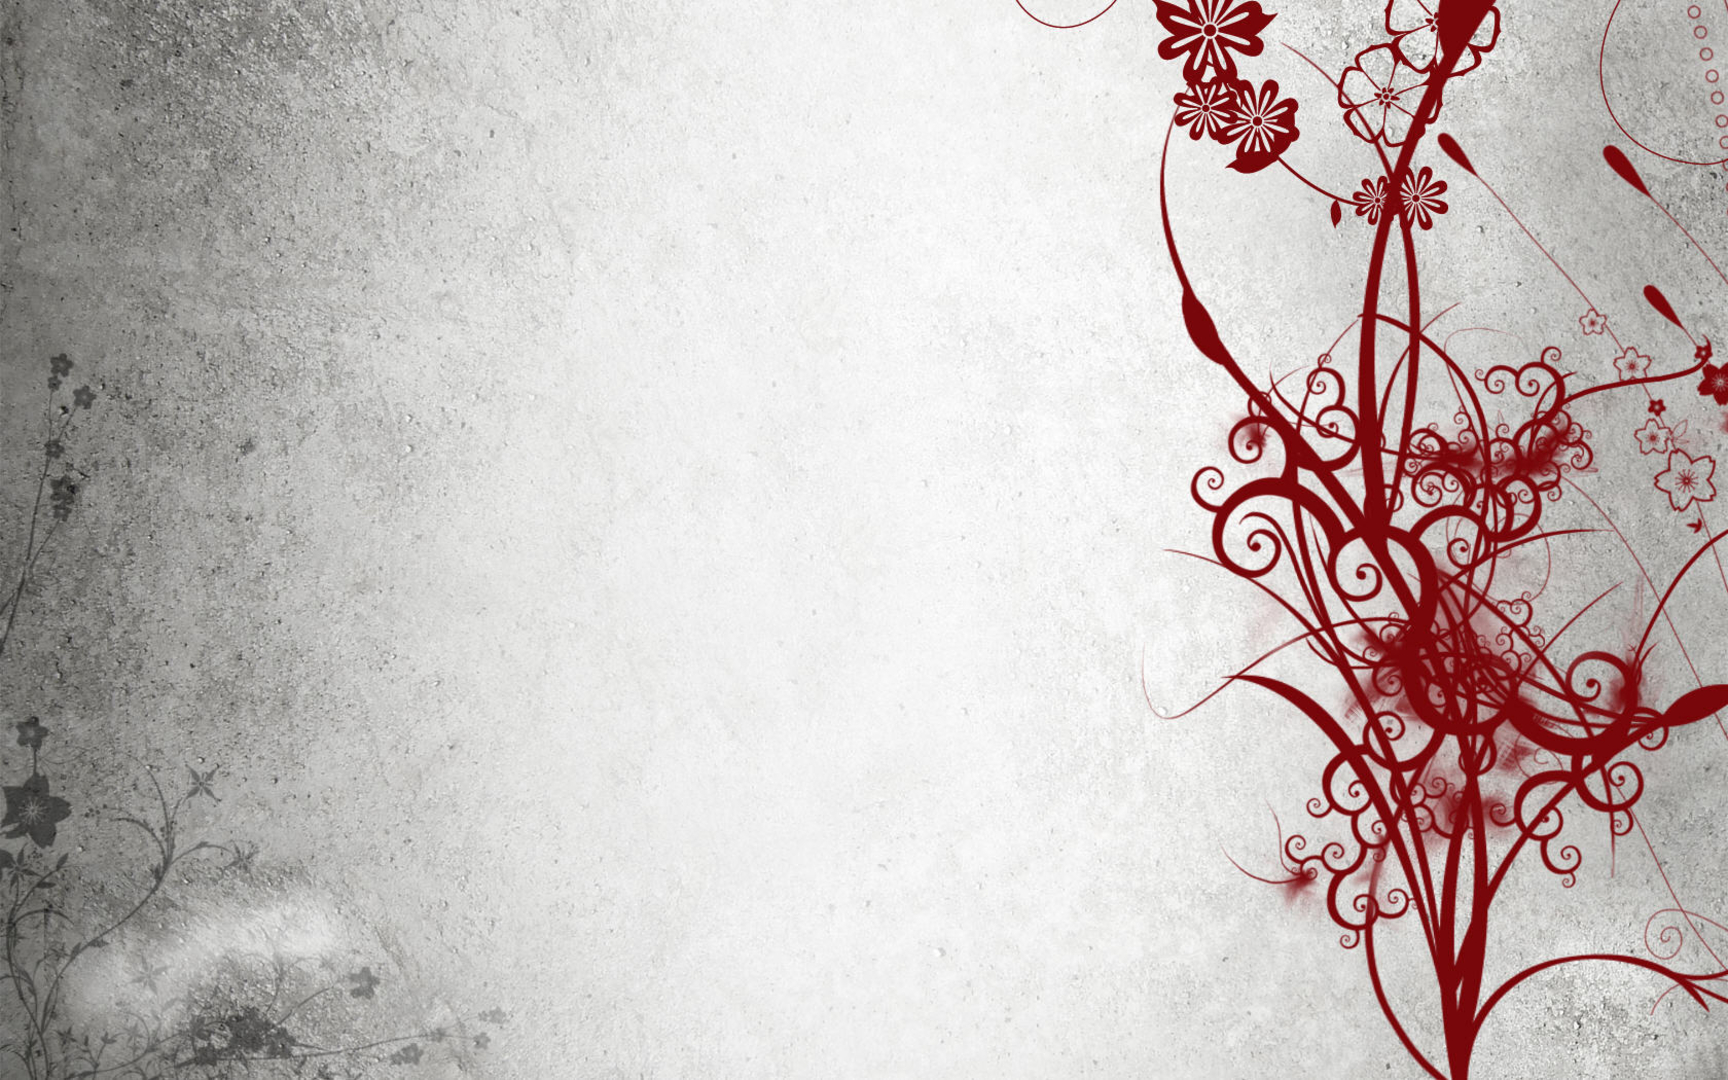 Desktop Wallpapers Red And White Background Wallpaper   iWallScreen 1728x1080